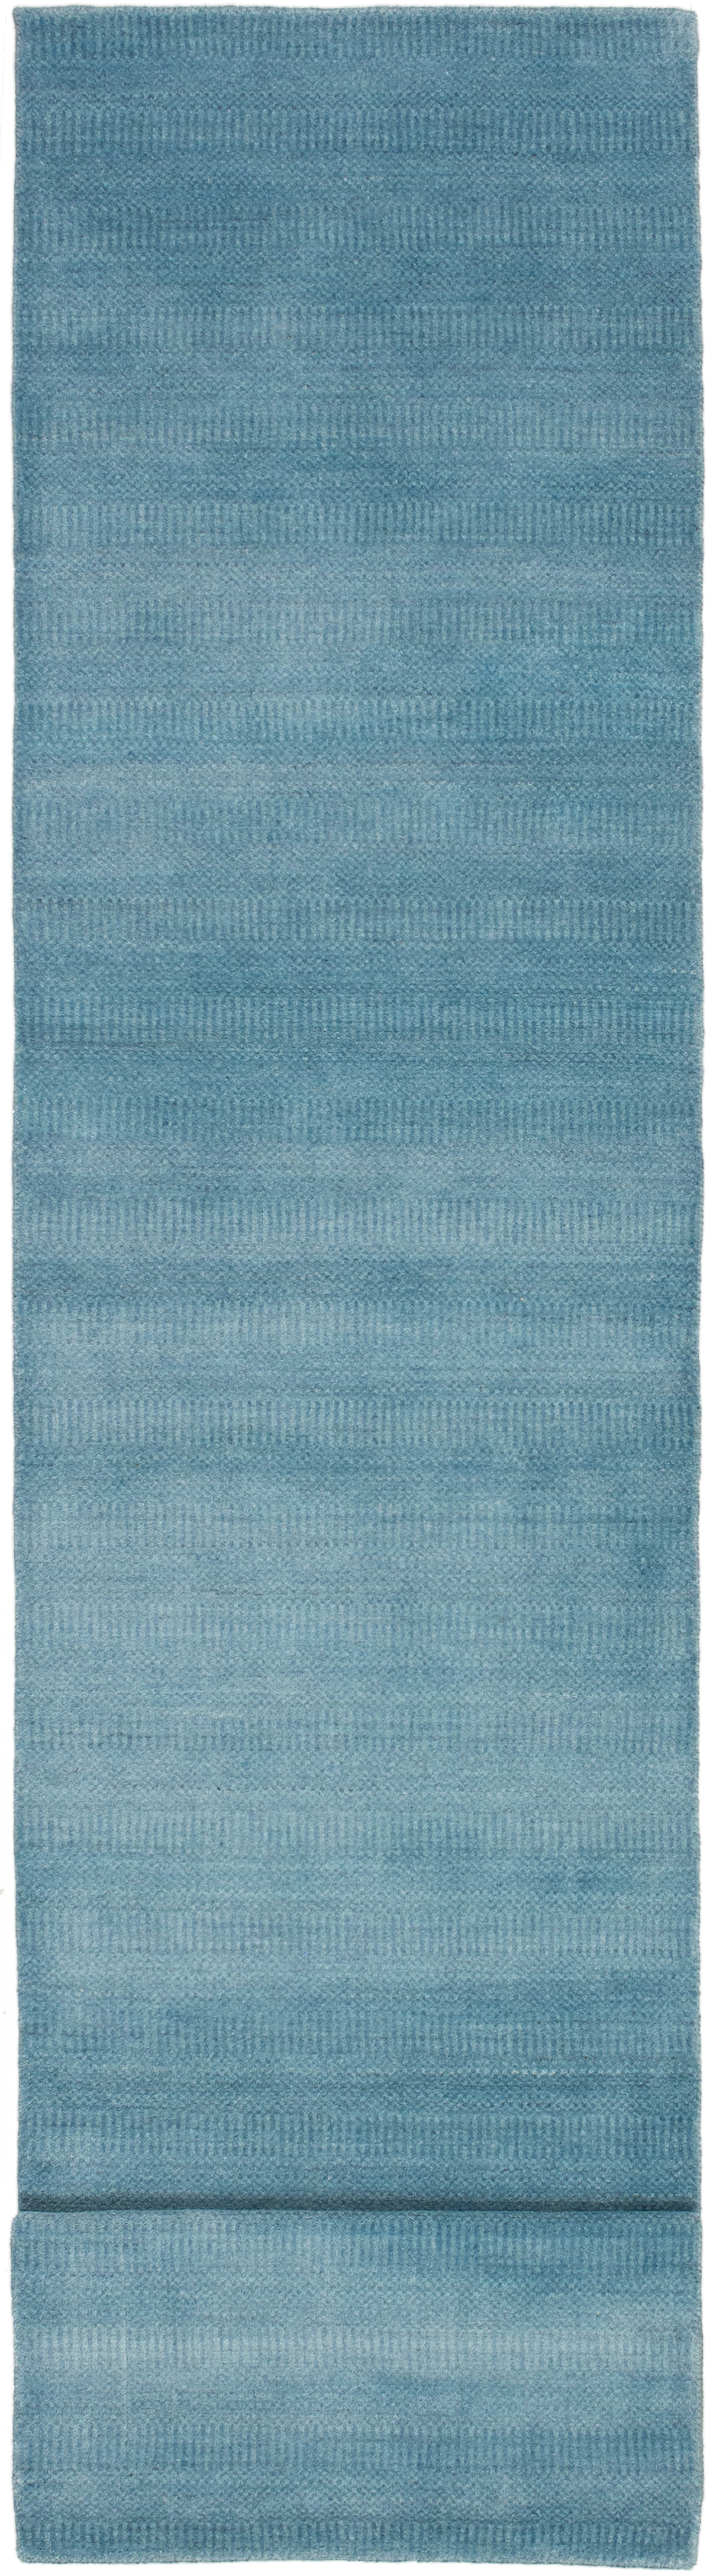 """Hand-knotted Pearl Denim Blue  Rug 2'6"""" x 12'0"""" Size: 2'6"""" x 12'0"""""""